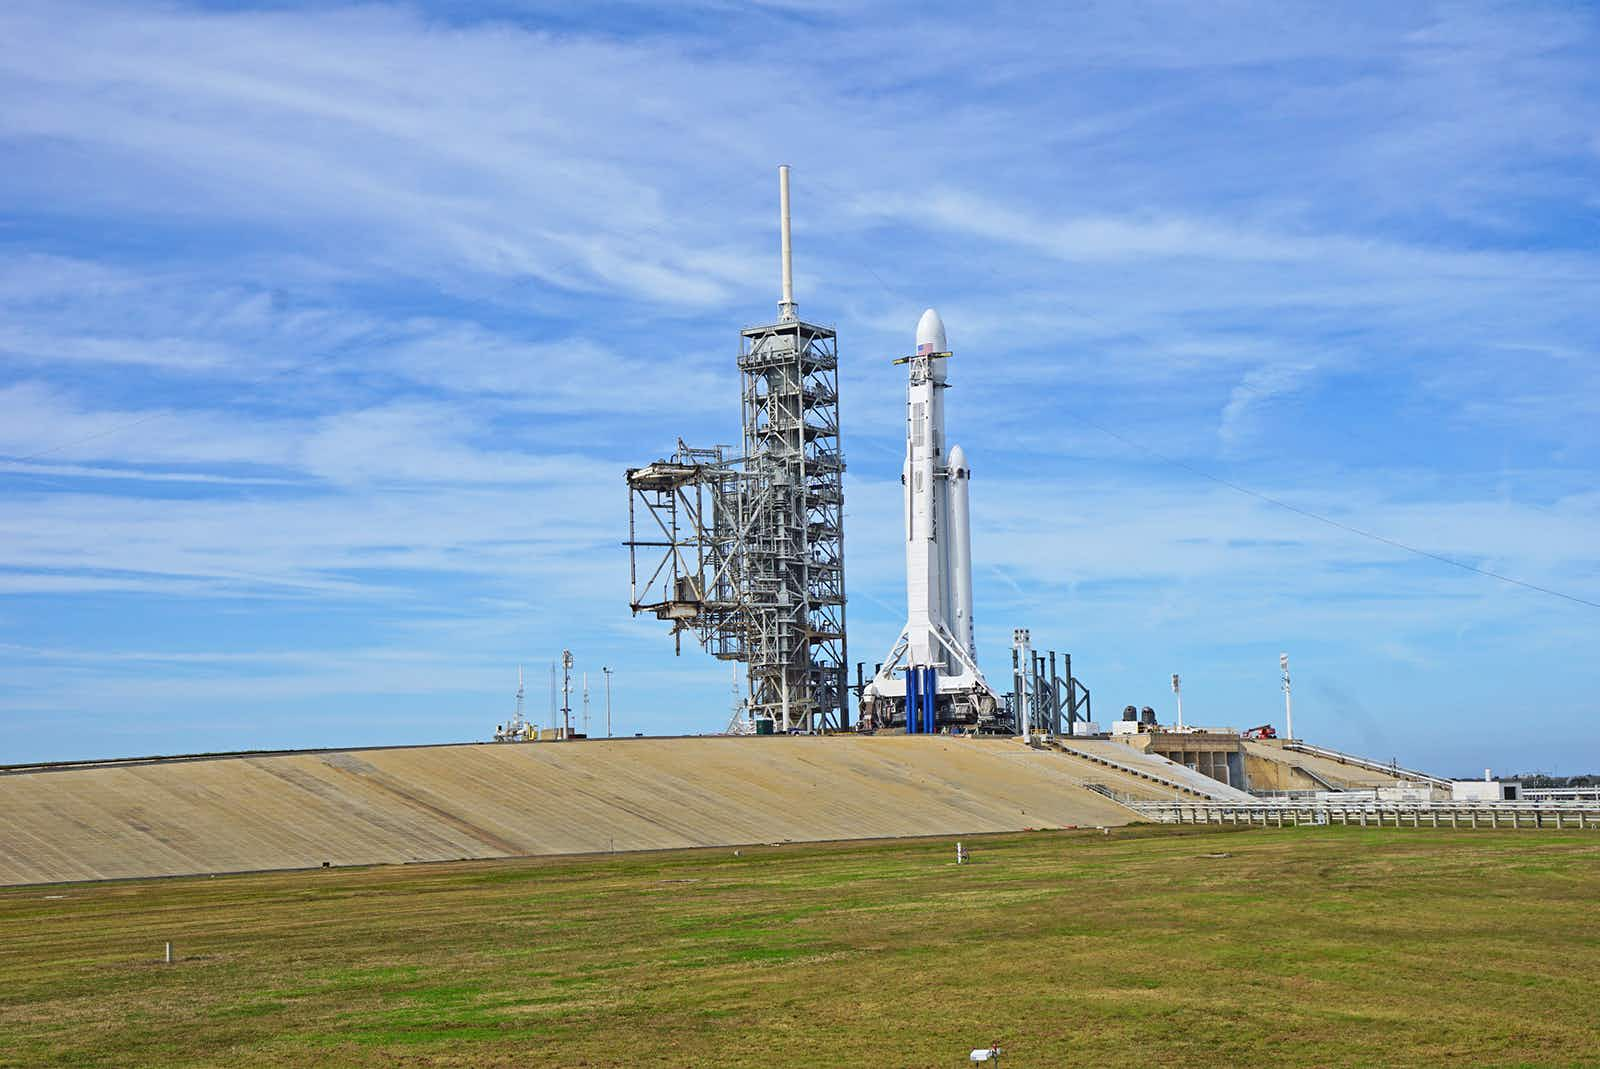 3-2-1: how to experience a rocket launch on Florida's Space